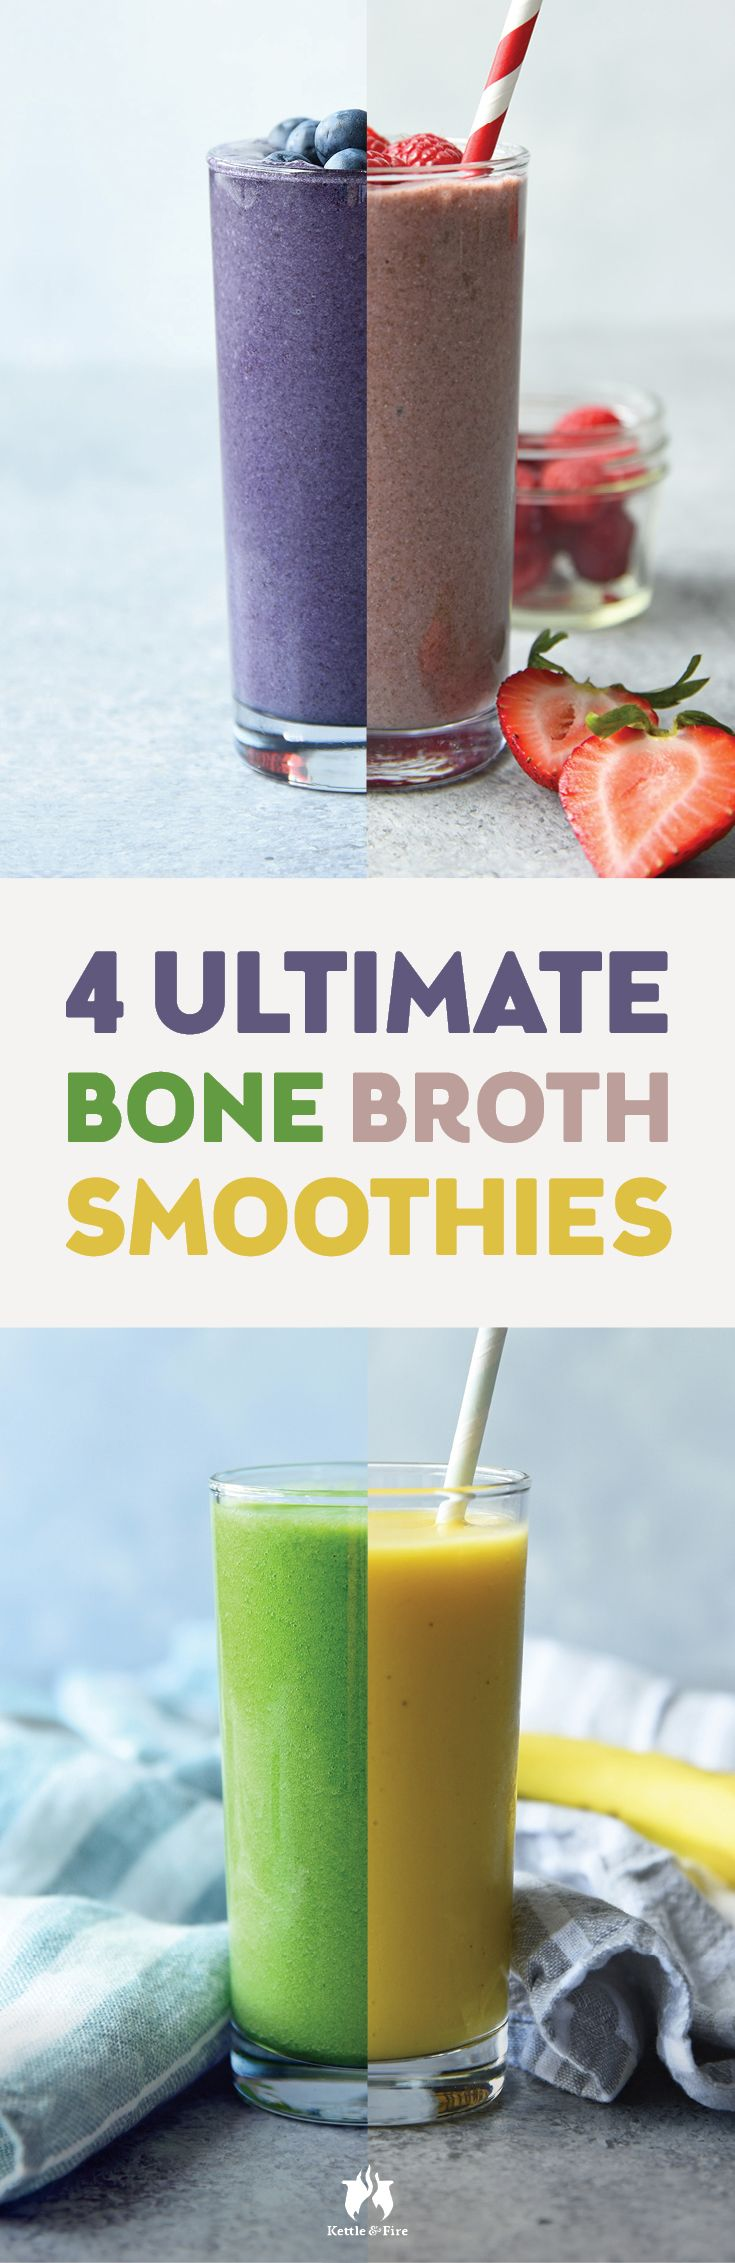 Keep up your healthy bone broth intake during the summer months with these 4 ultimate bone broth smoothies. Recipe video included!